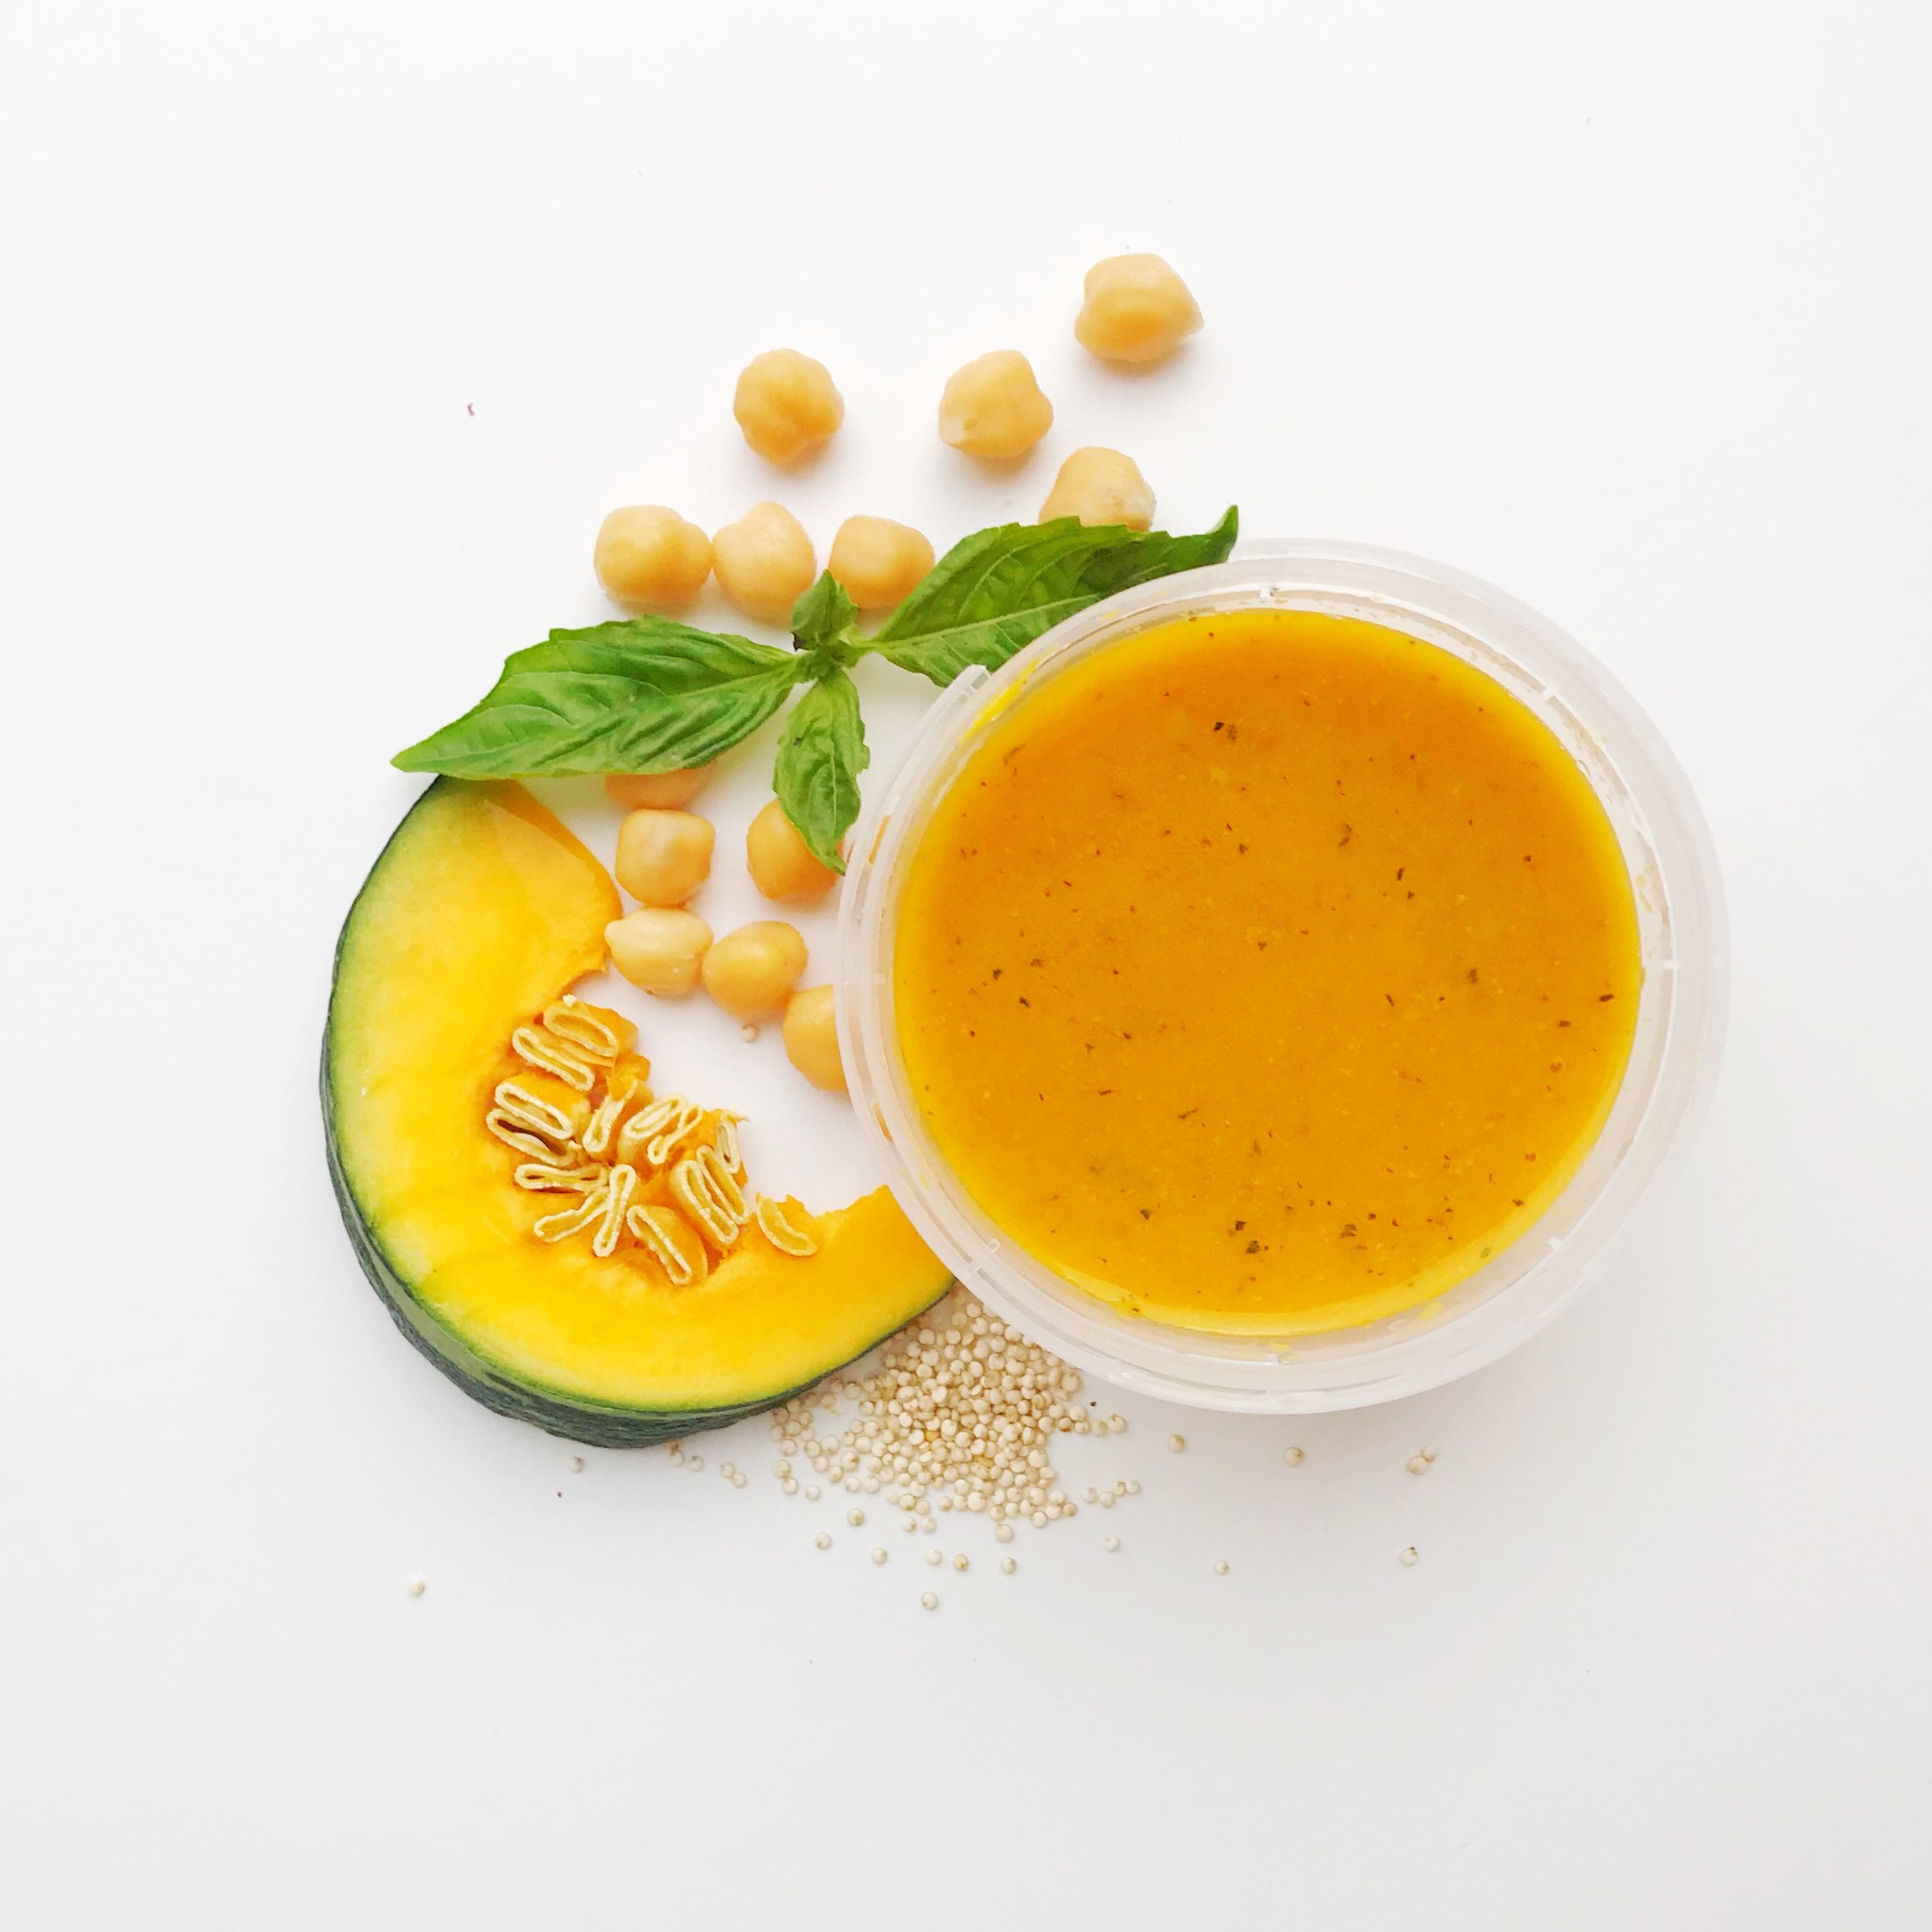 CHICKPEA SQUASHLY - Grown-ups are not the only one benefiting from the chickpea craze! We took roasted chickpea, golden squash, and basil with a hint of turmeric. Yes, babies and toddlers can have grown-up flavours too and they love it!